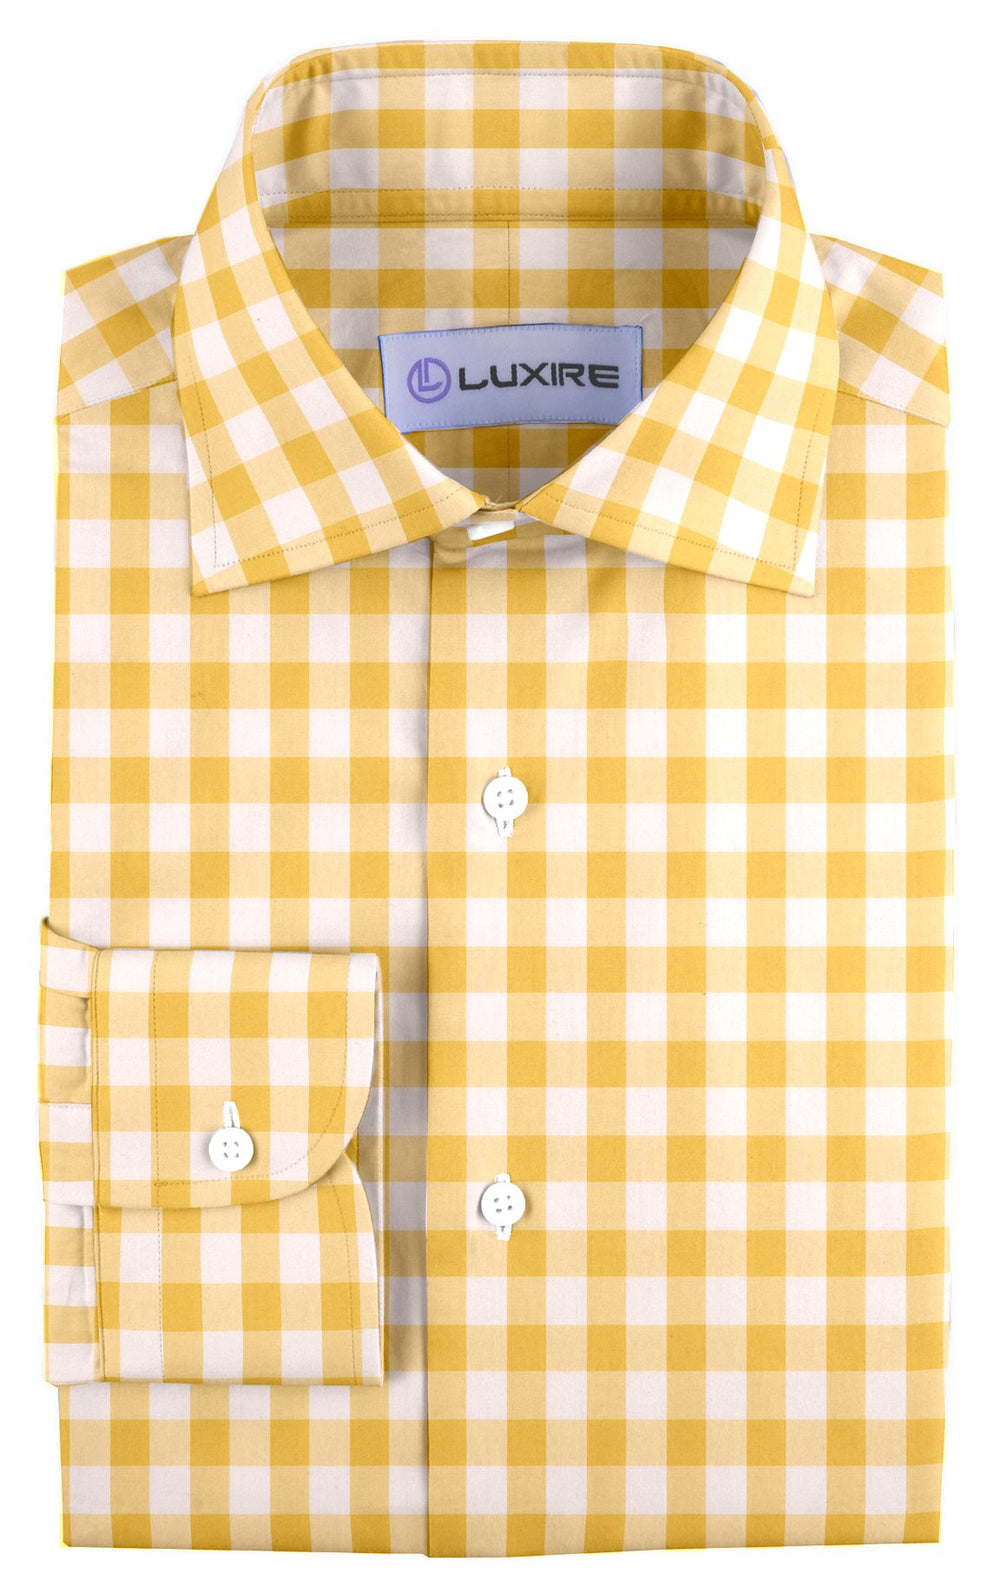 Golden Yellow Windowpane Checks On White